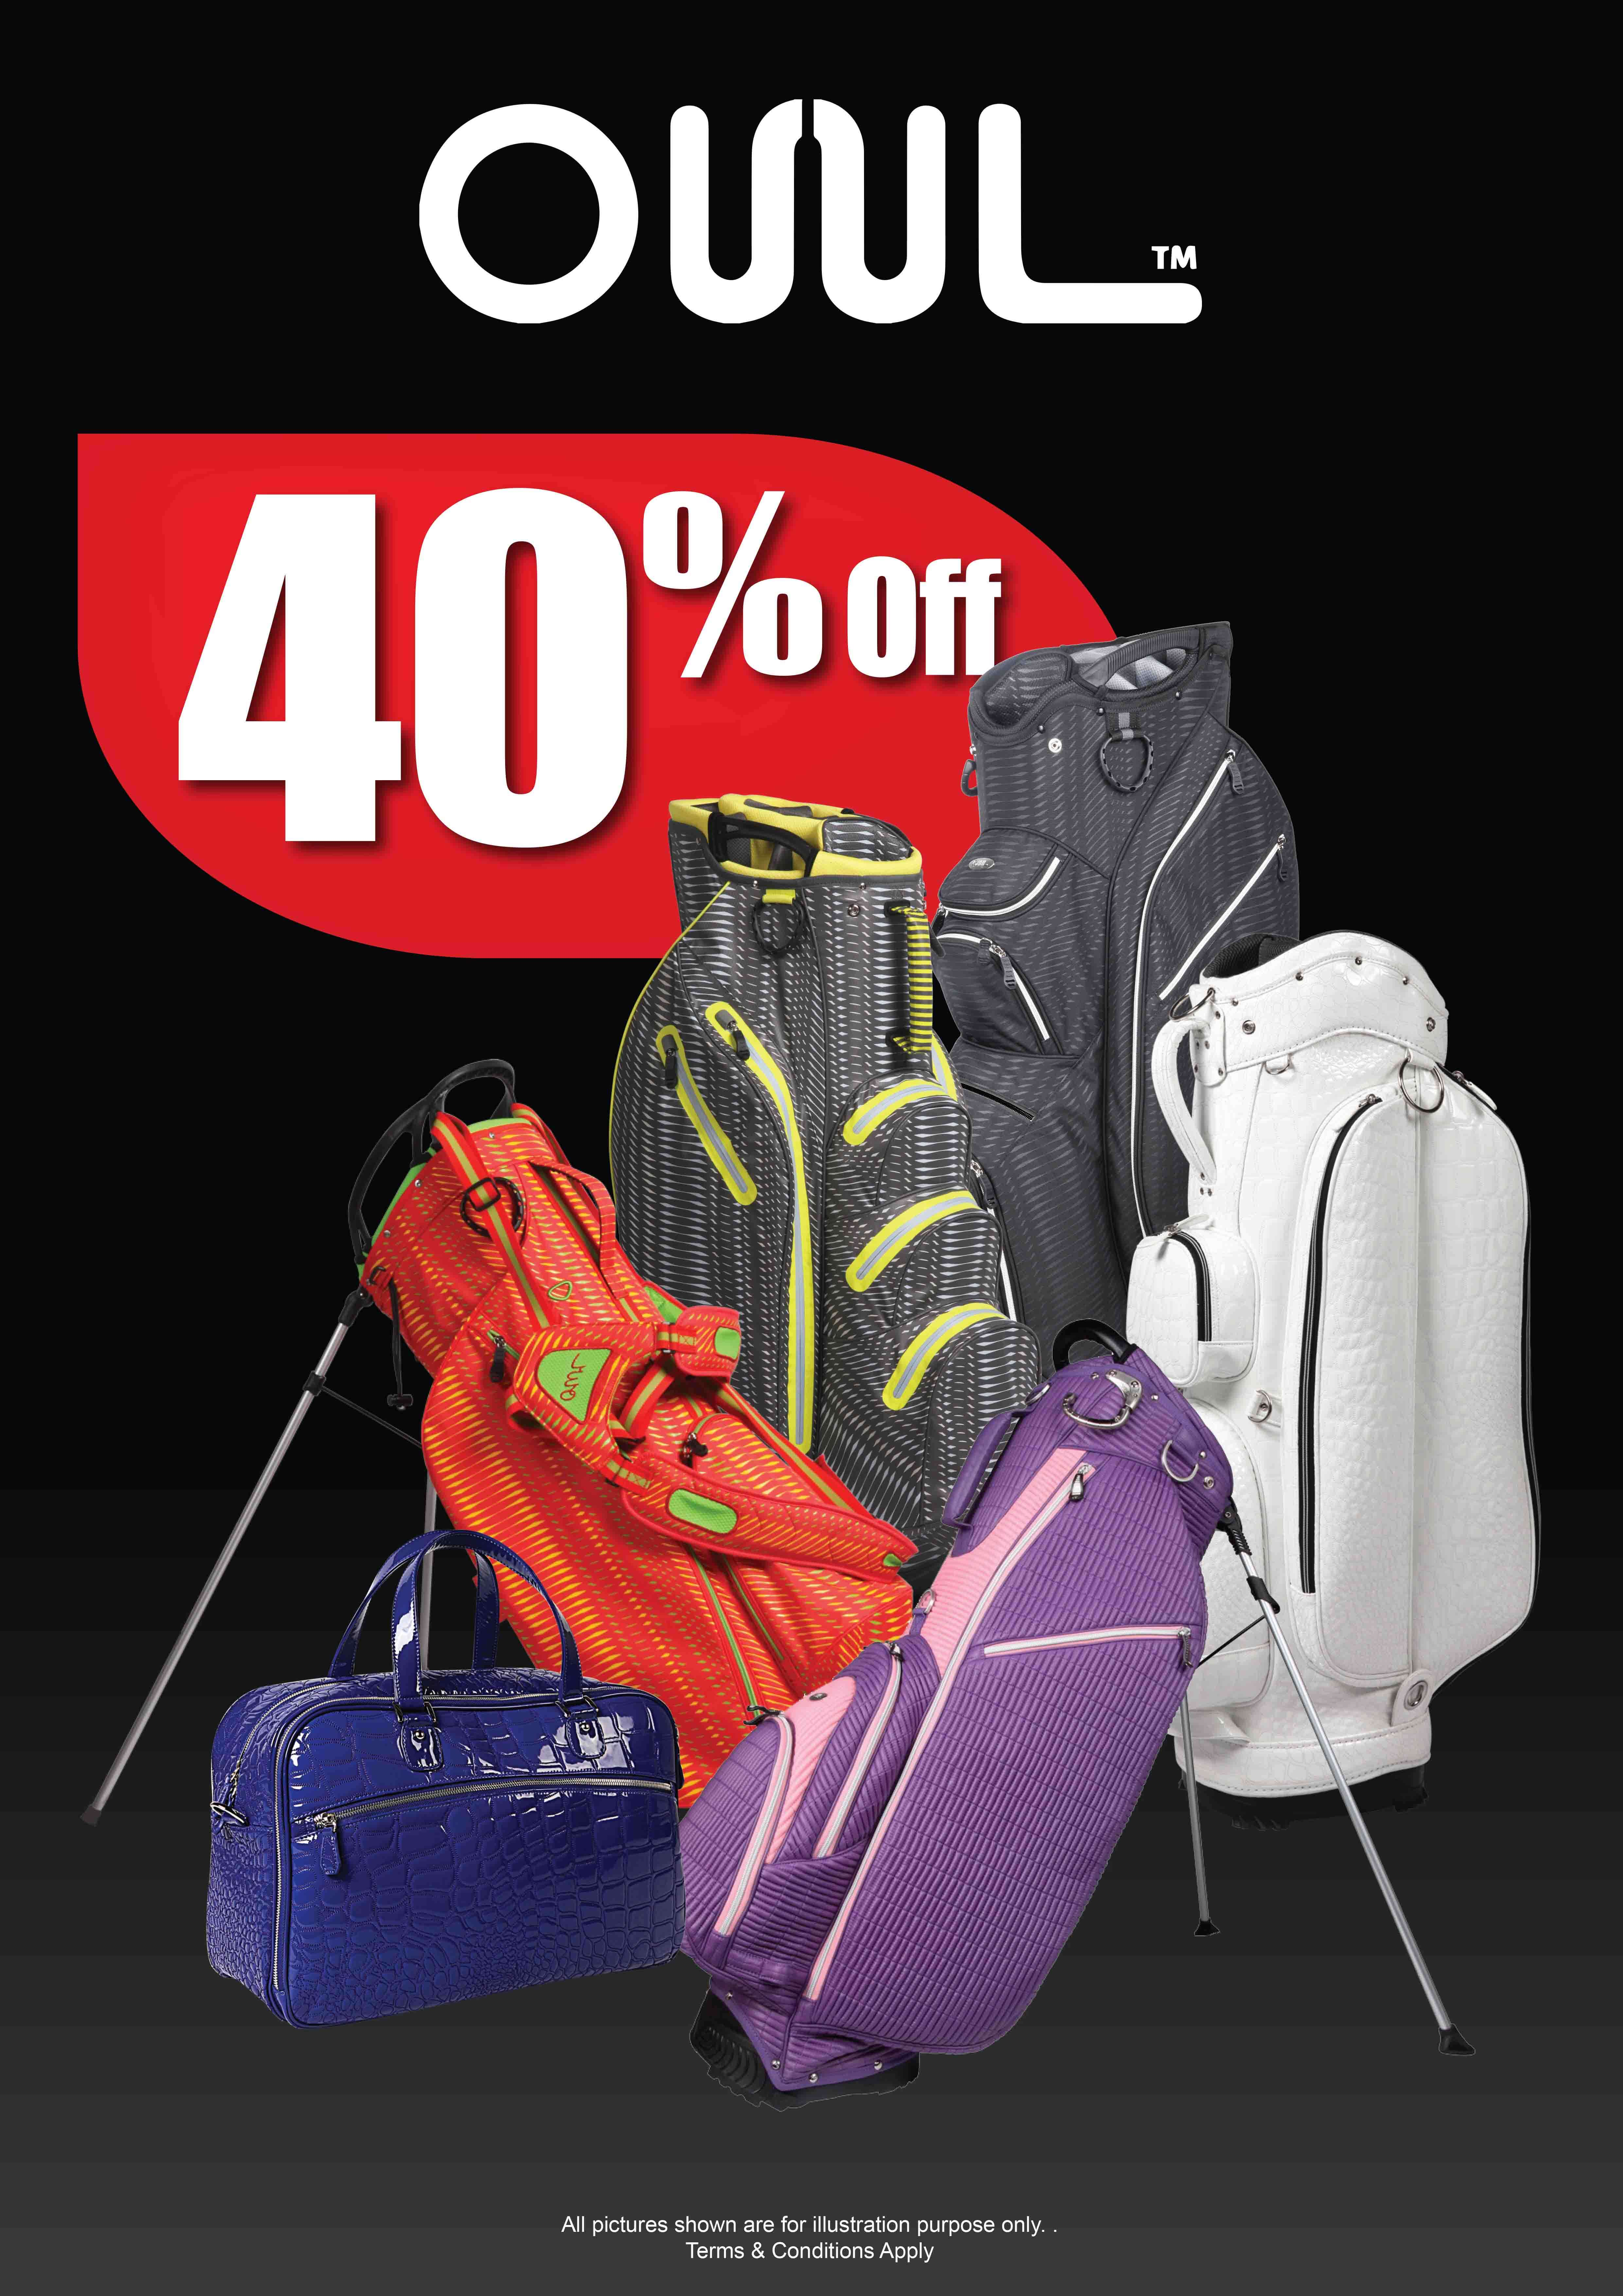 OUUL 40% off